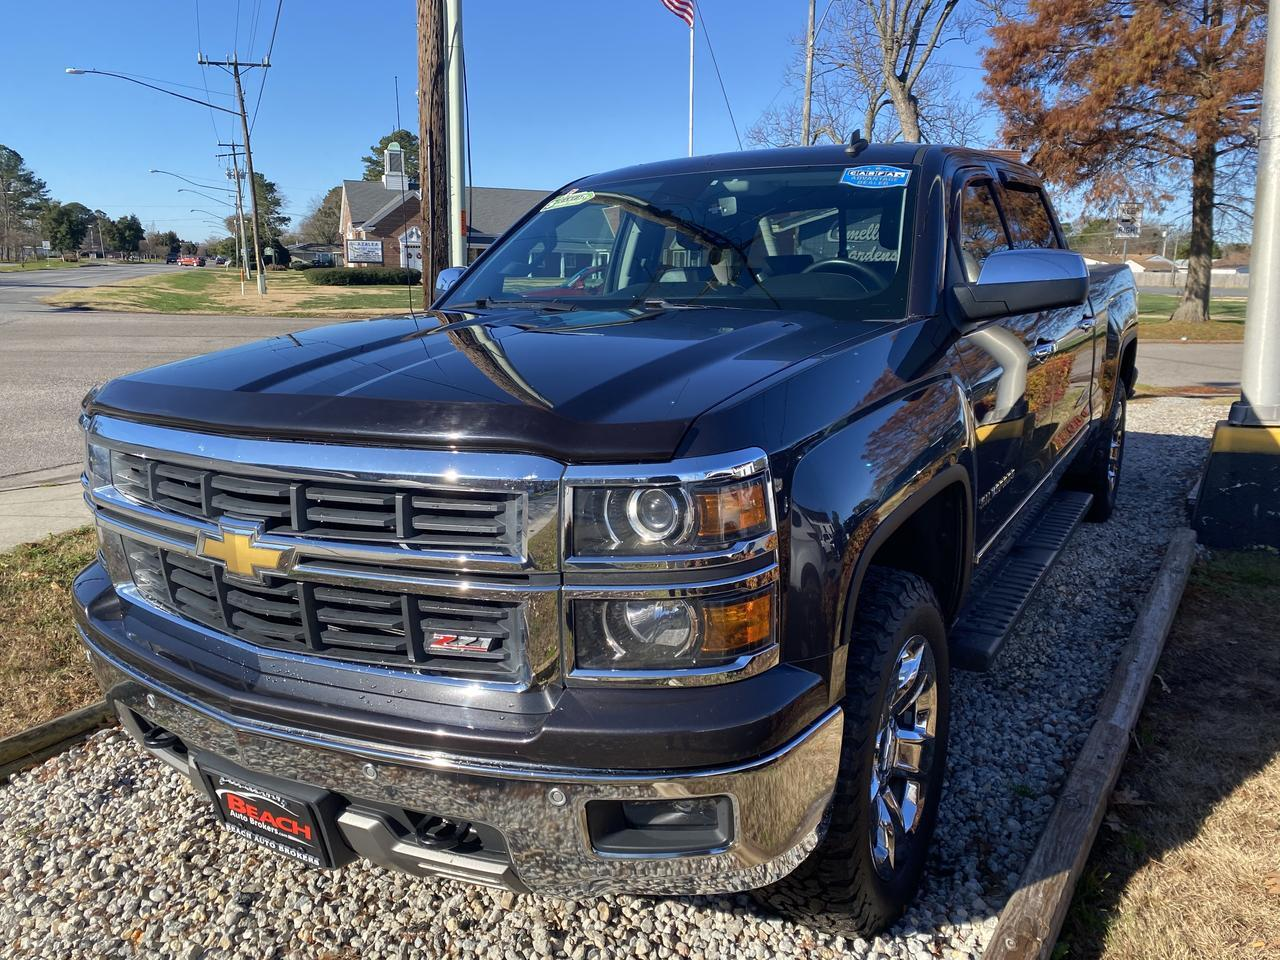 2014 CHEVROLET SILVERADO LTZ CREW CAB 4X4, WARRANTY, LEATHER, Z-71 PKG, HEATED SEATS, BLUETOOTH, BACKUP CAM, 1 OWNER! Norfolk VA